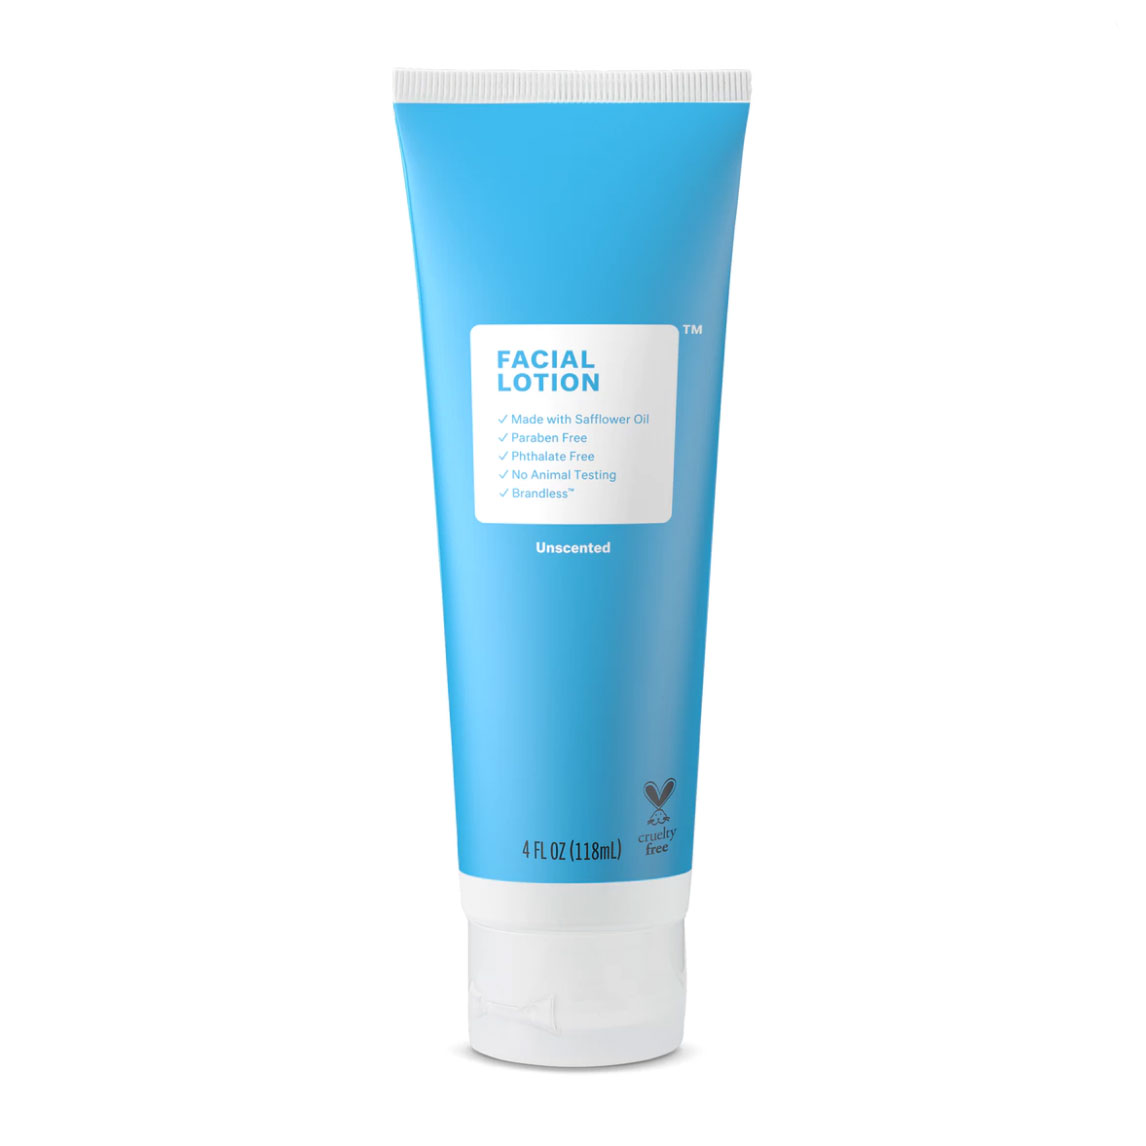 Brandless Facial Lotion